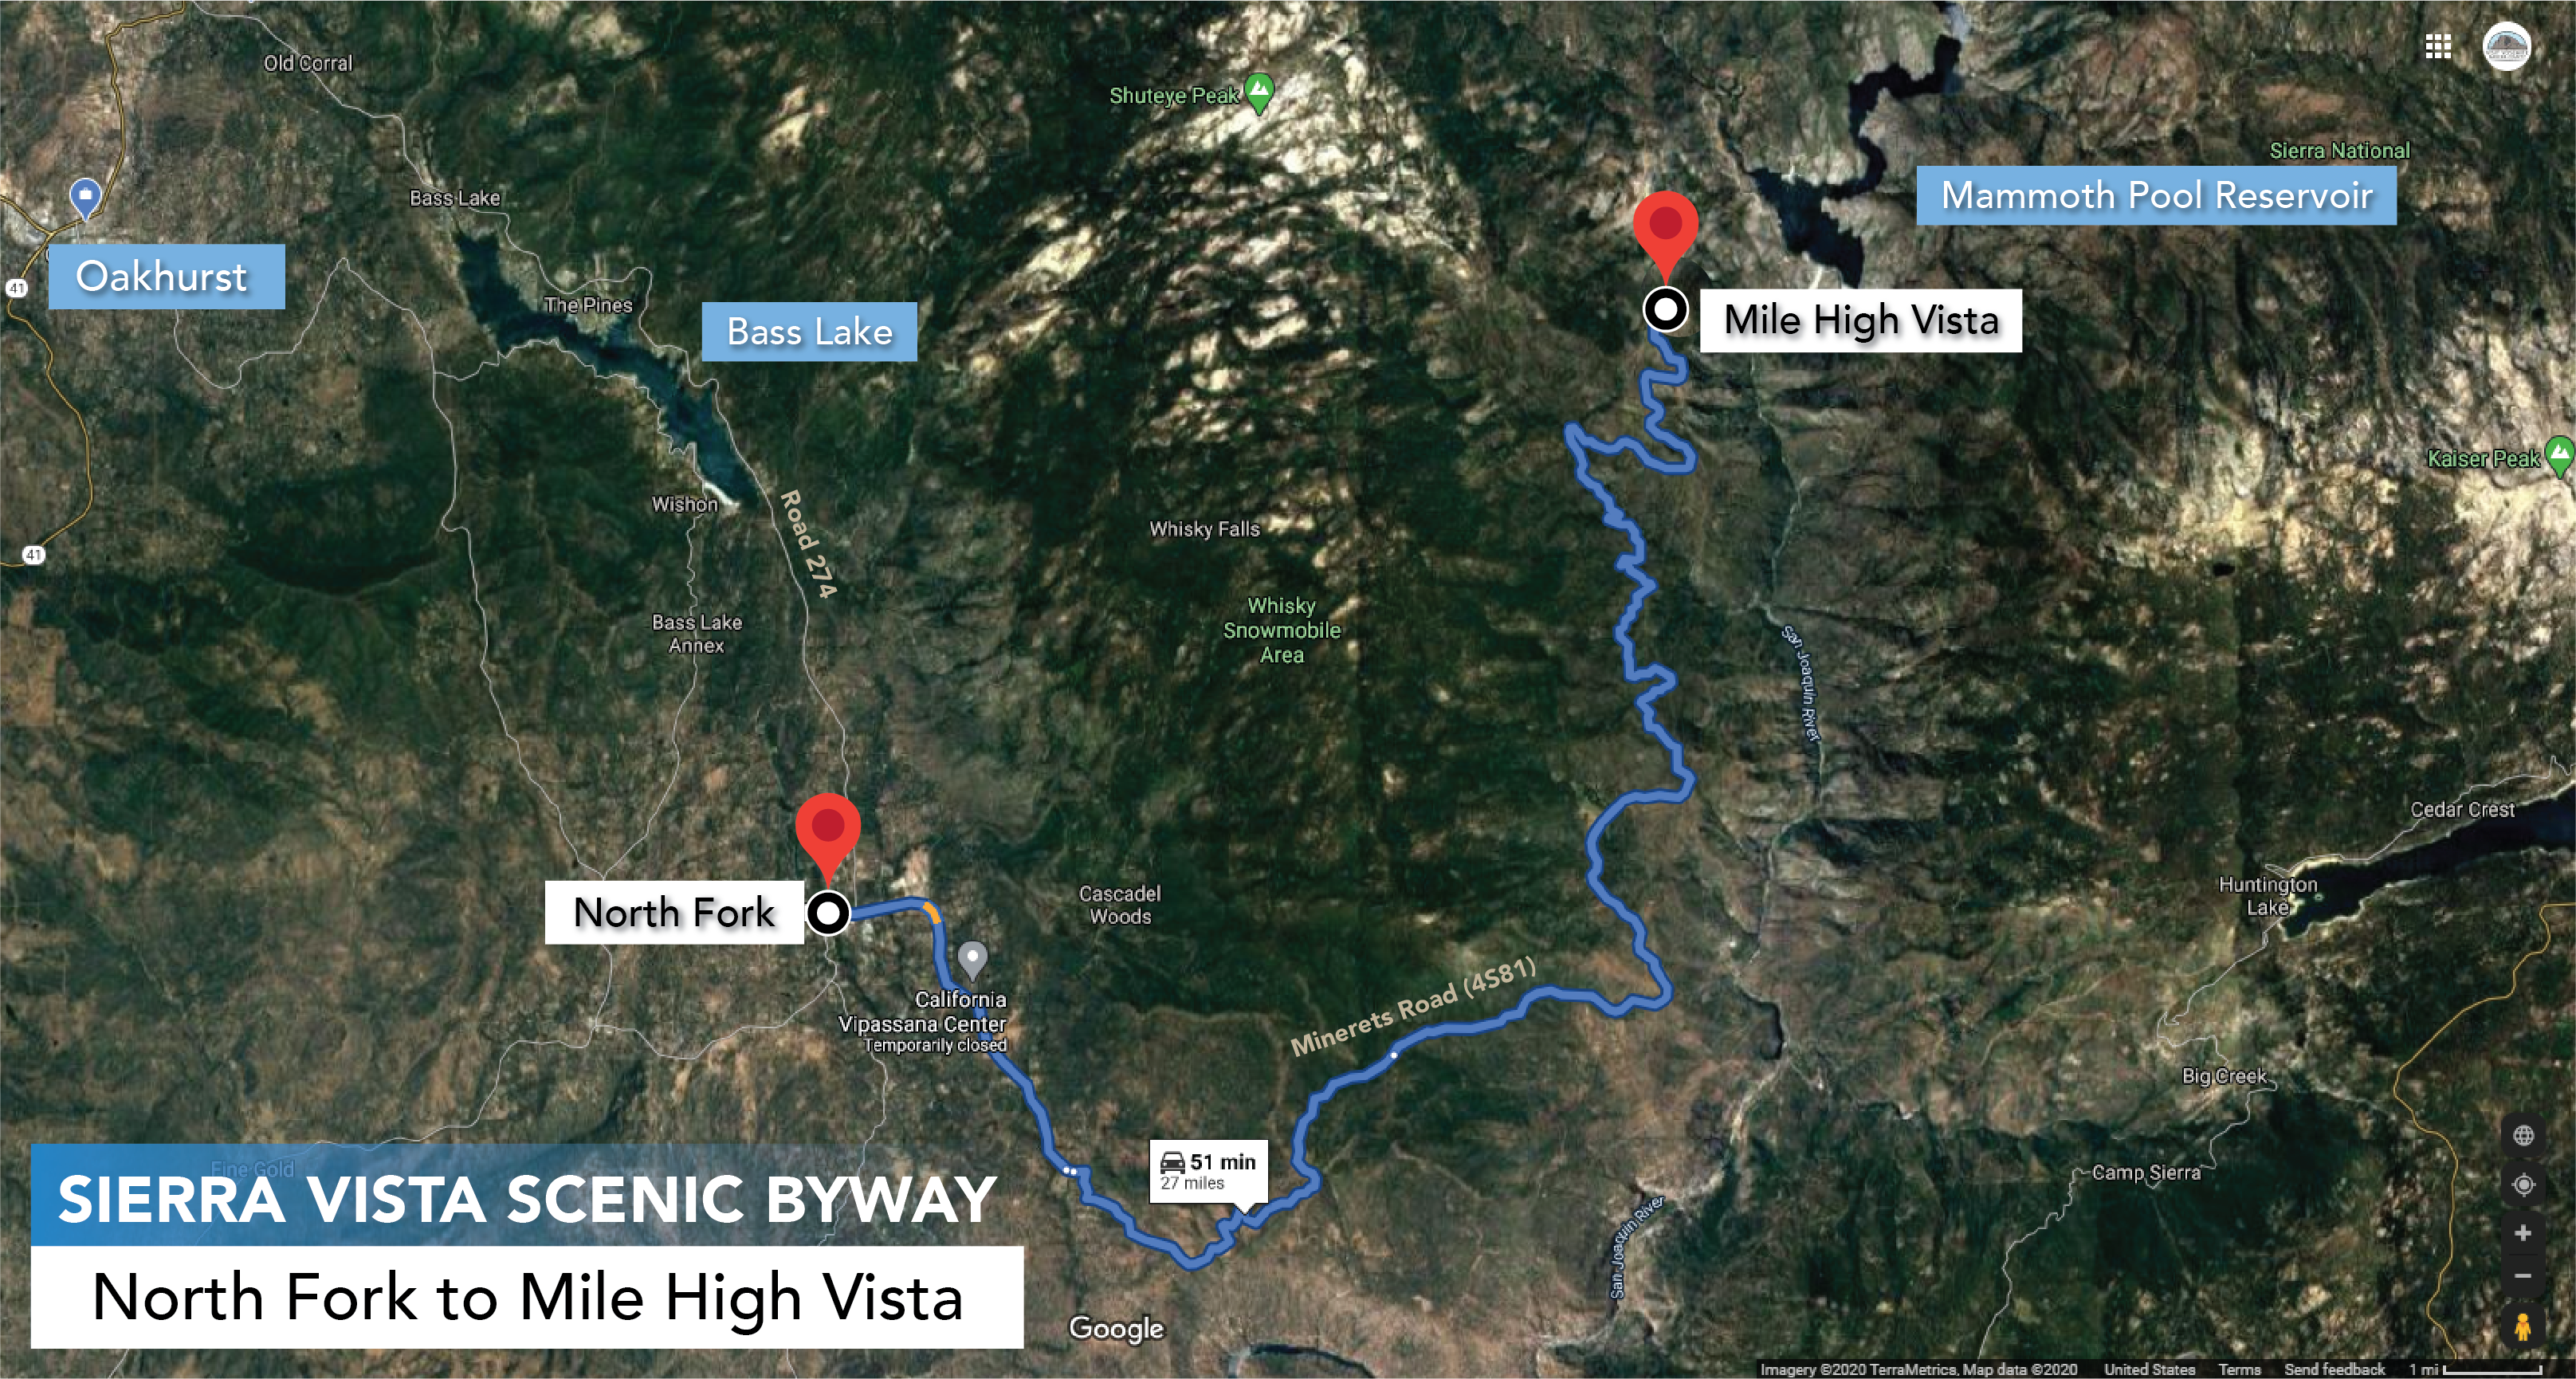 Sierra Vista Scenic Byway Map - North Fork to Mile High Vista